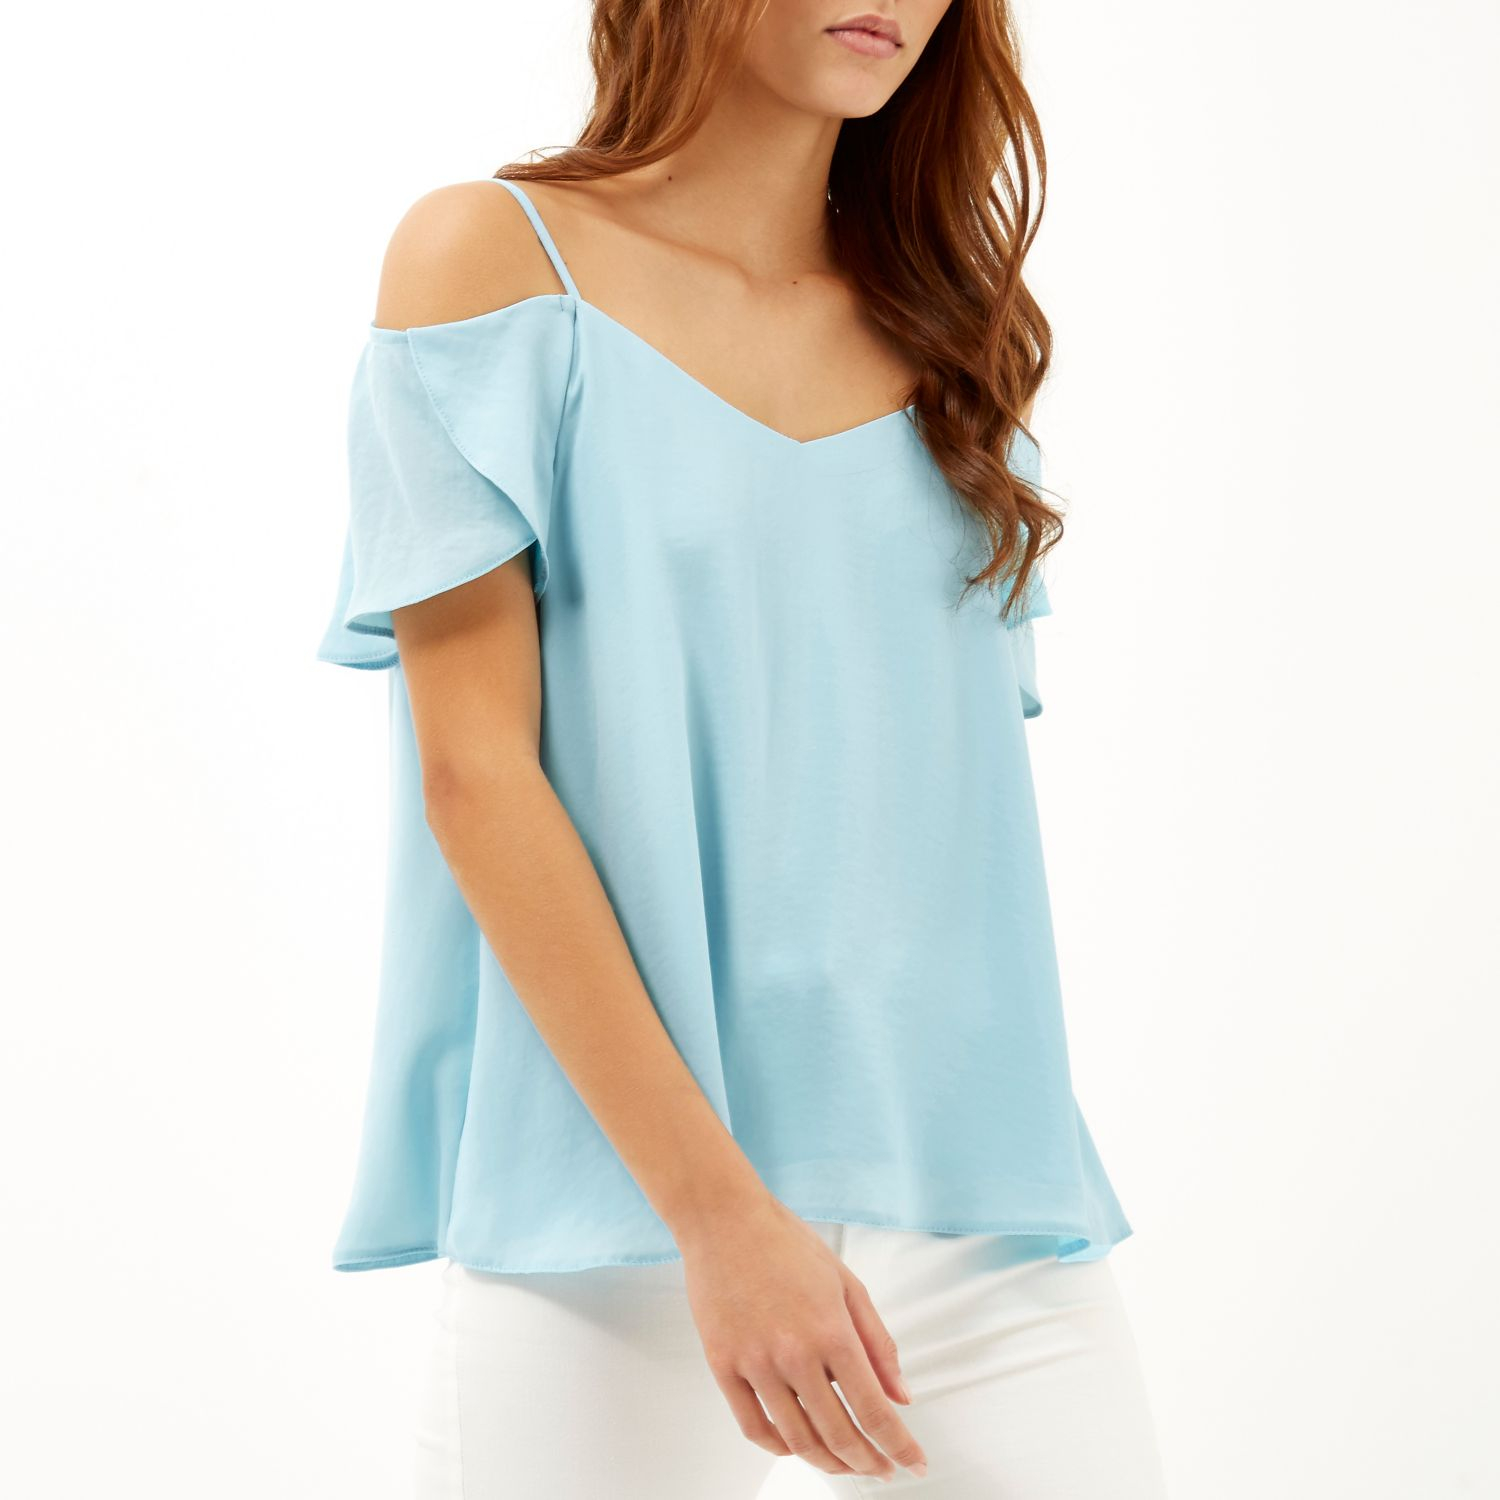 c17b06f0b17 River Island Light Blue Cold Shoulder Frilly Sleeve Top in Blue - Lyst